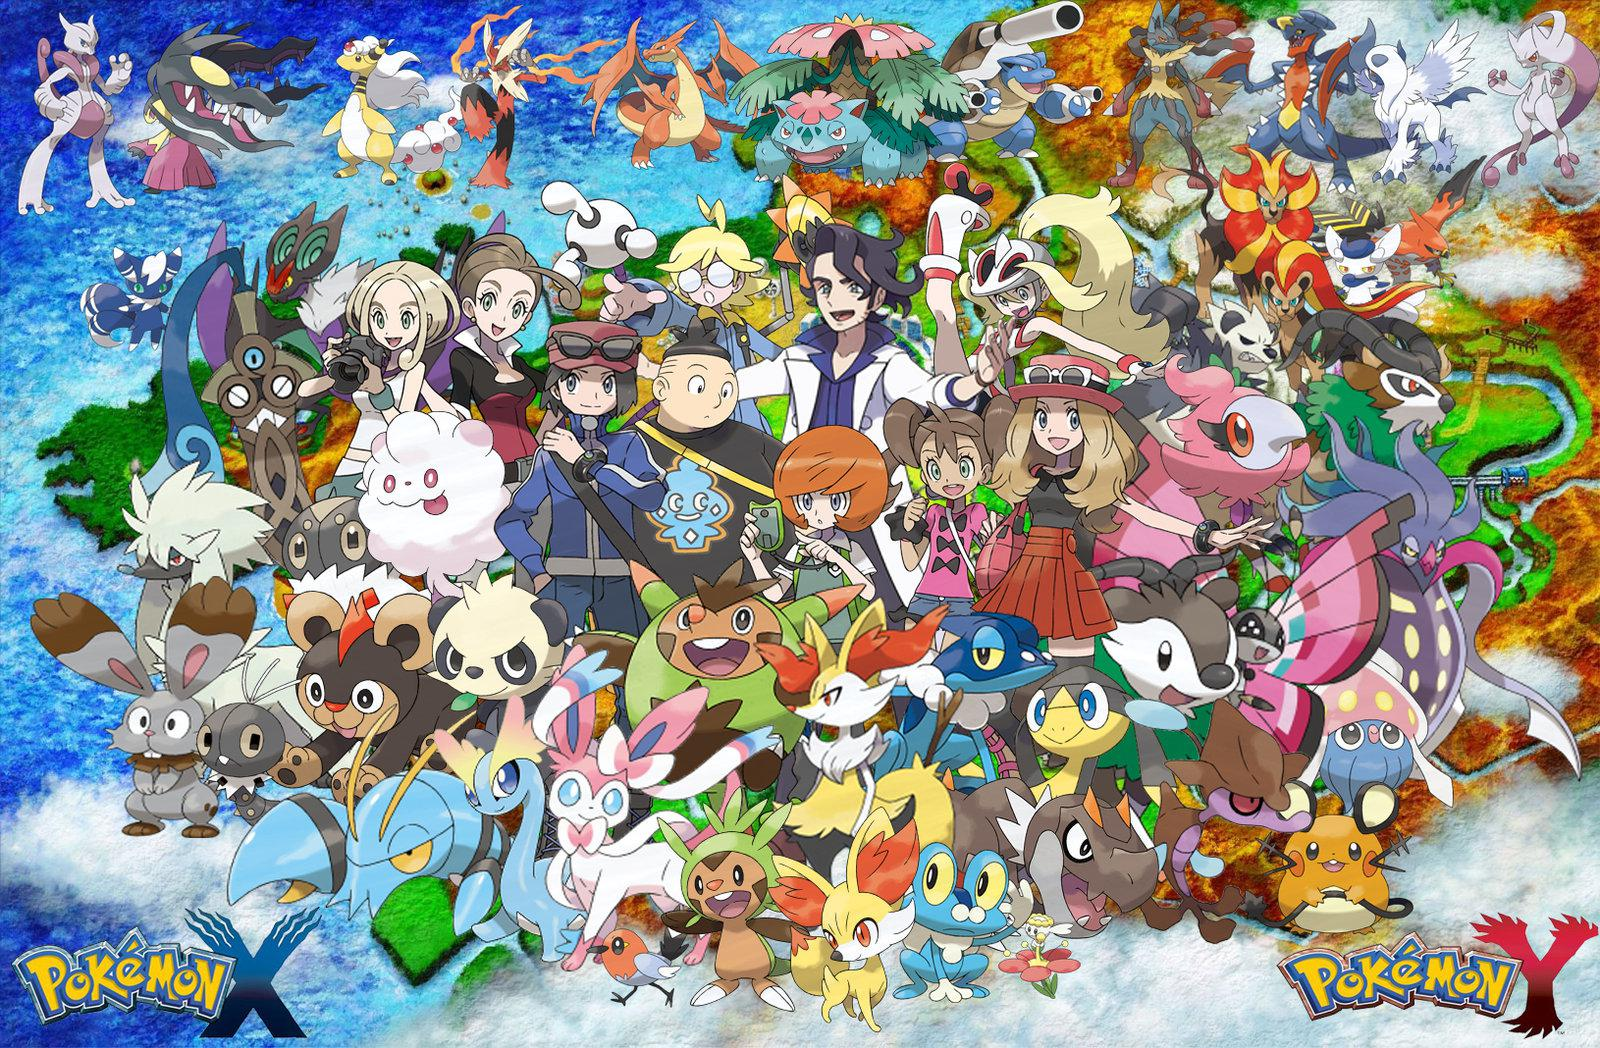 map pokemon yellow with Pokemon X 3ds Part 1 on Warp Pipe furthermore Preview 20 Variant Foes Red Dragons further Best Original Pokemon moreover Pokemon X 3ds Part 1 moreover R Simpsons 2 Homer Simpson 30 Homer Funny 316.